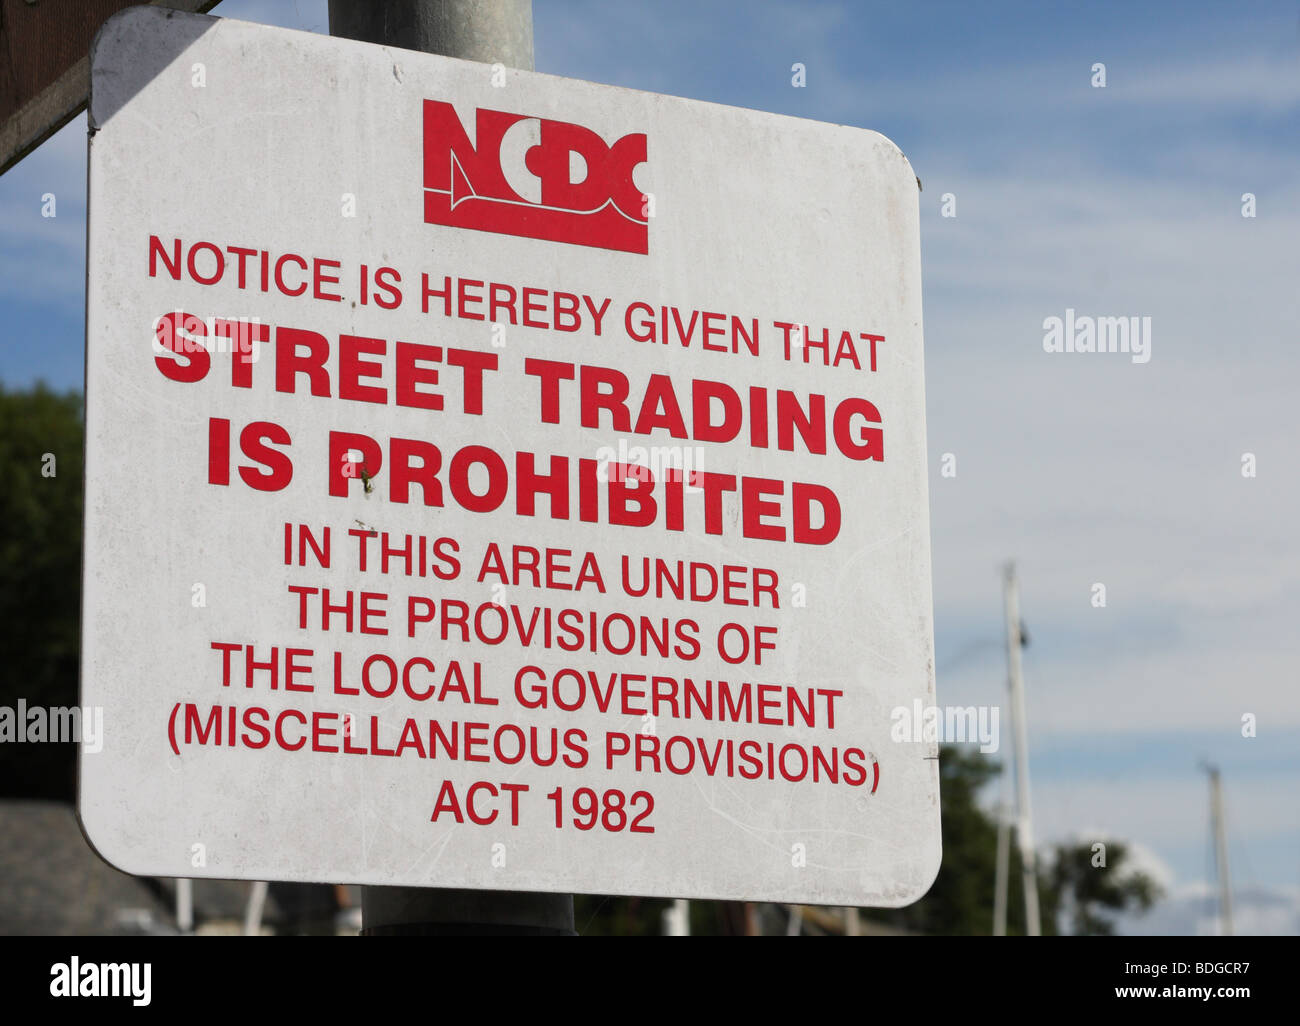 A Street Trading Prohibited sign in a U.K. town. - Stock Image